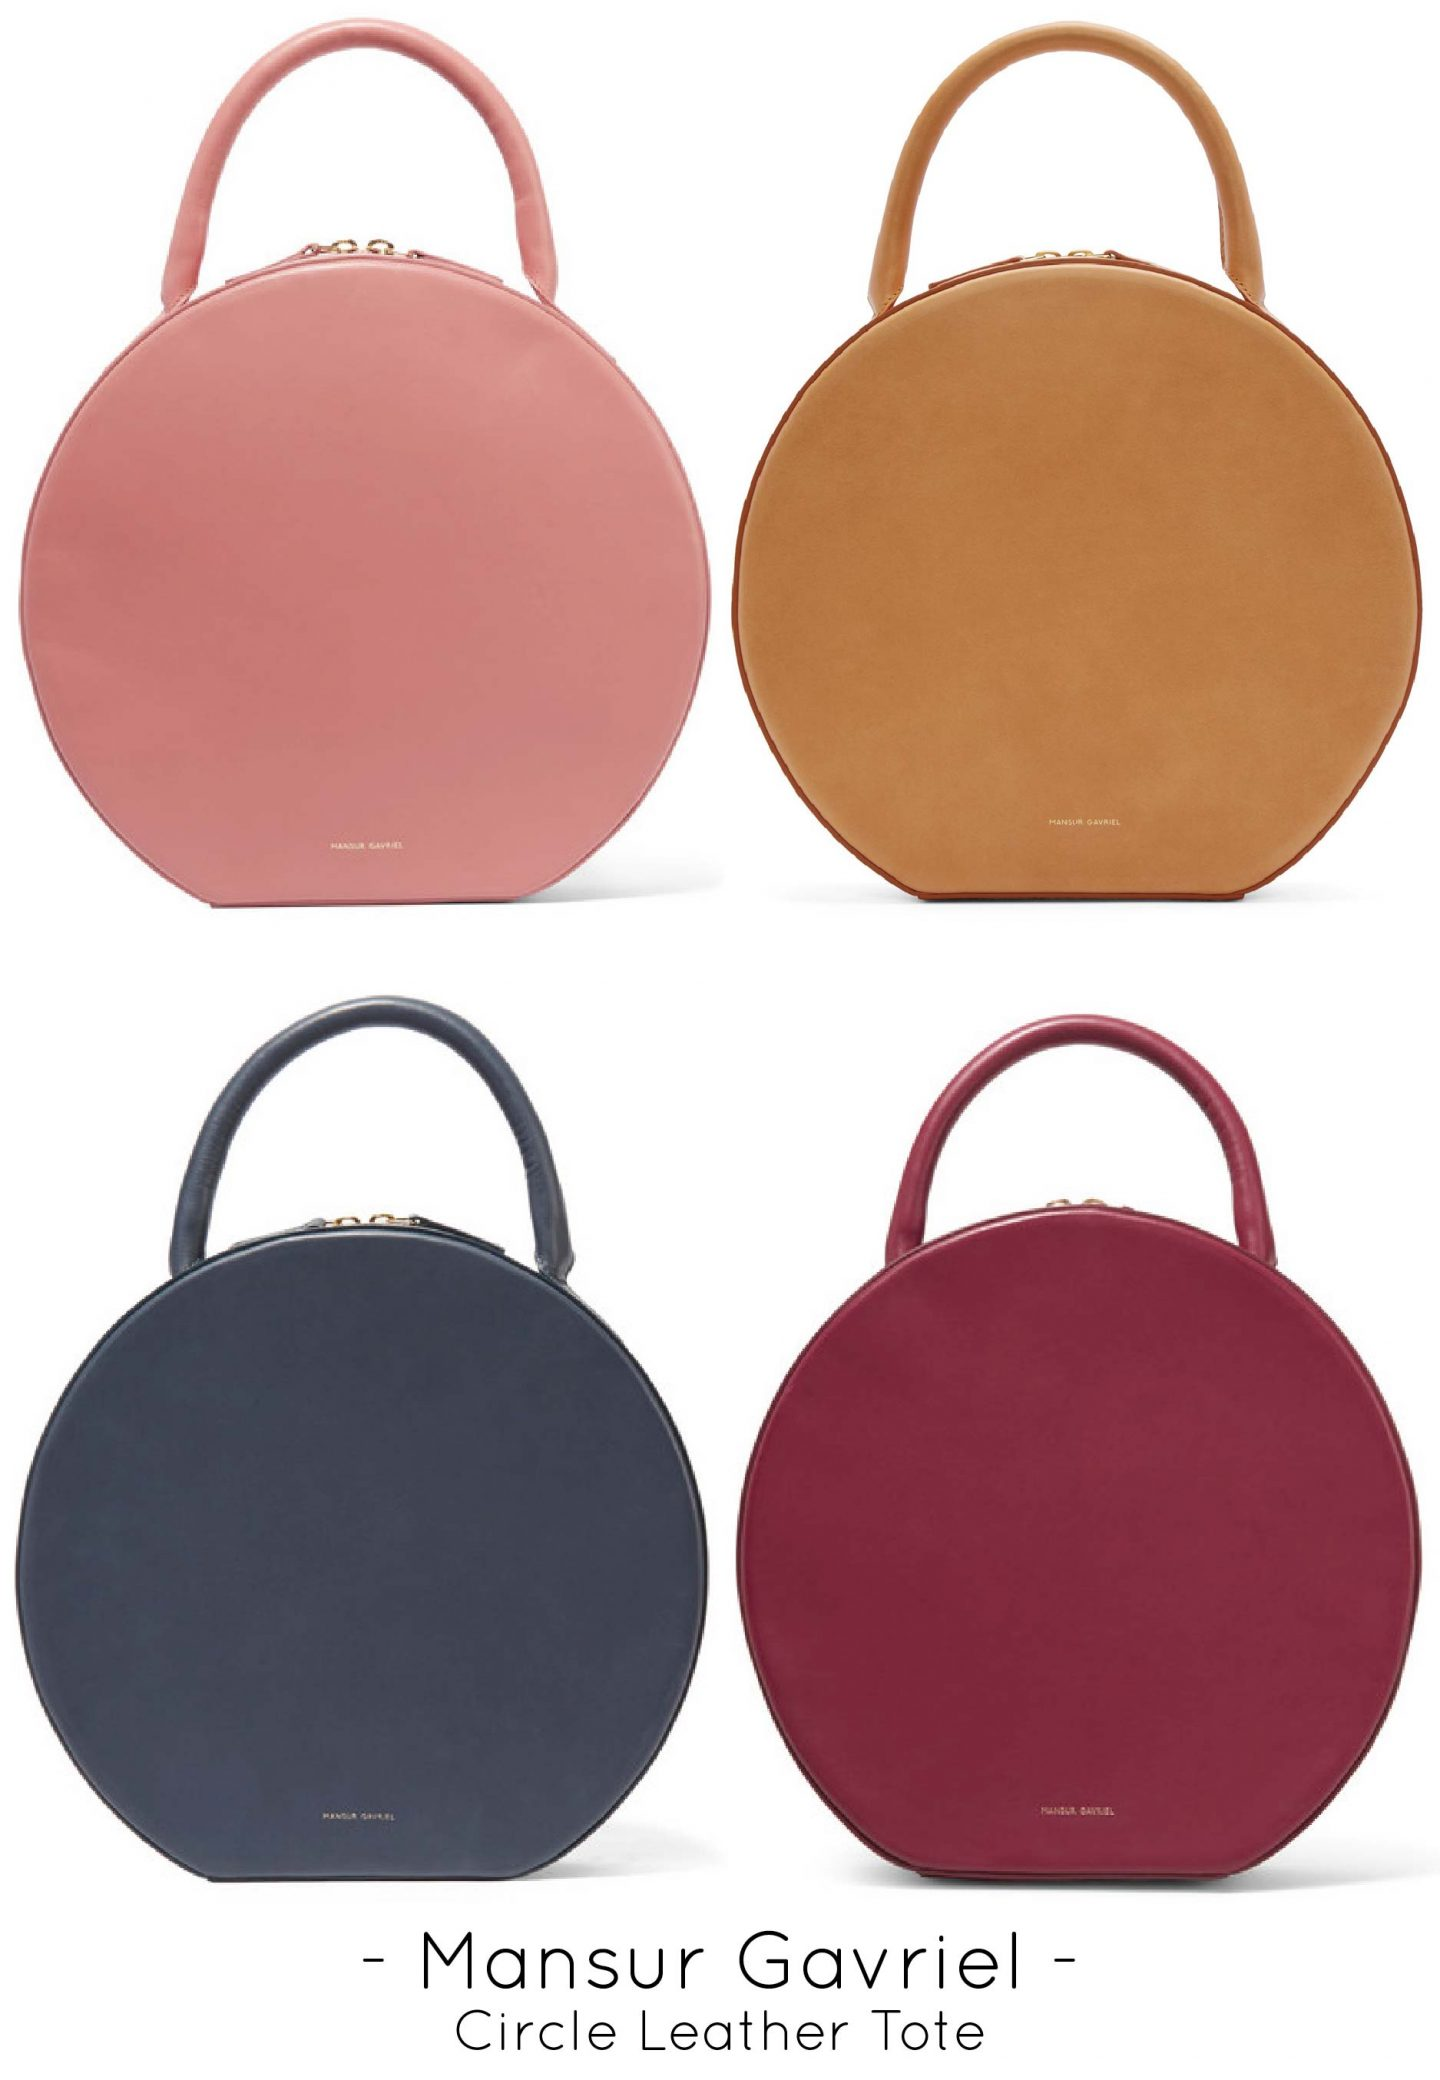 Mansur Gavriel Circle Leather Tote Bag, Designer Handbags